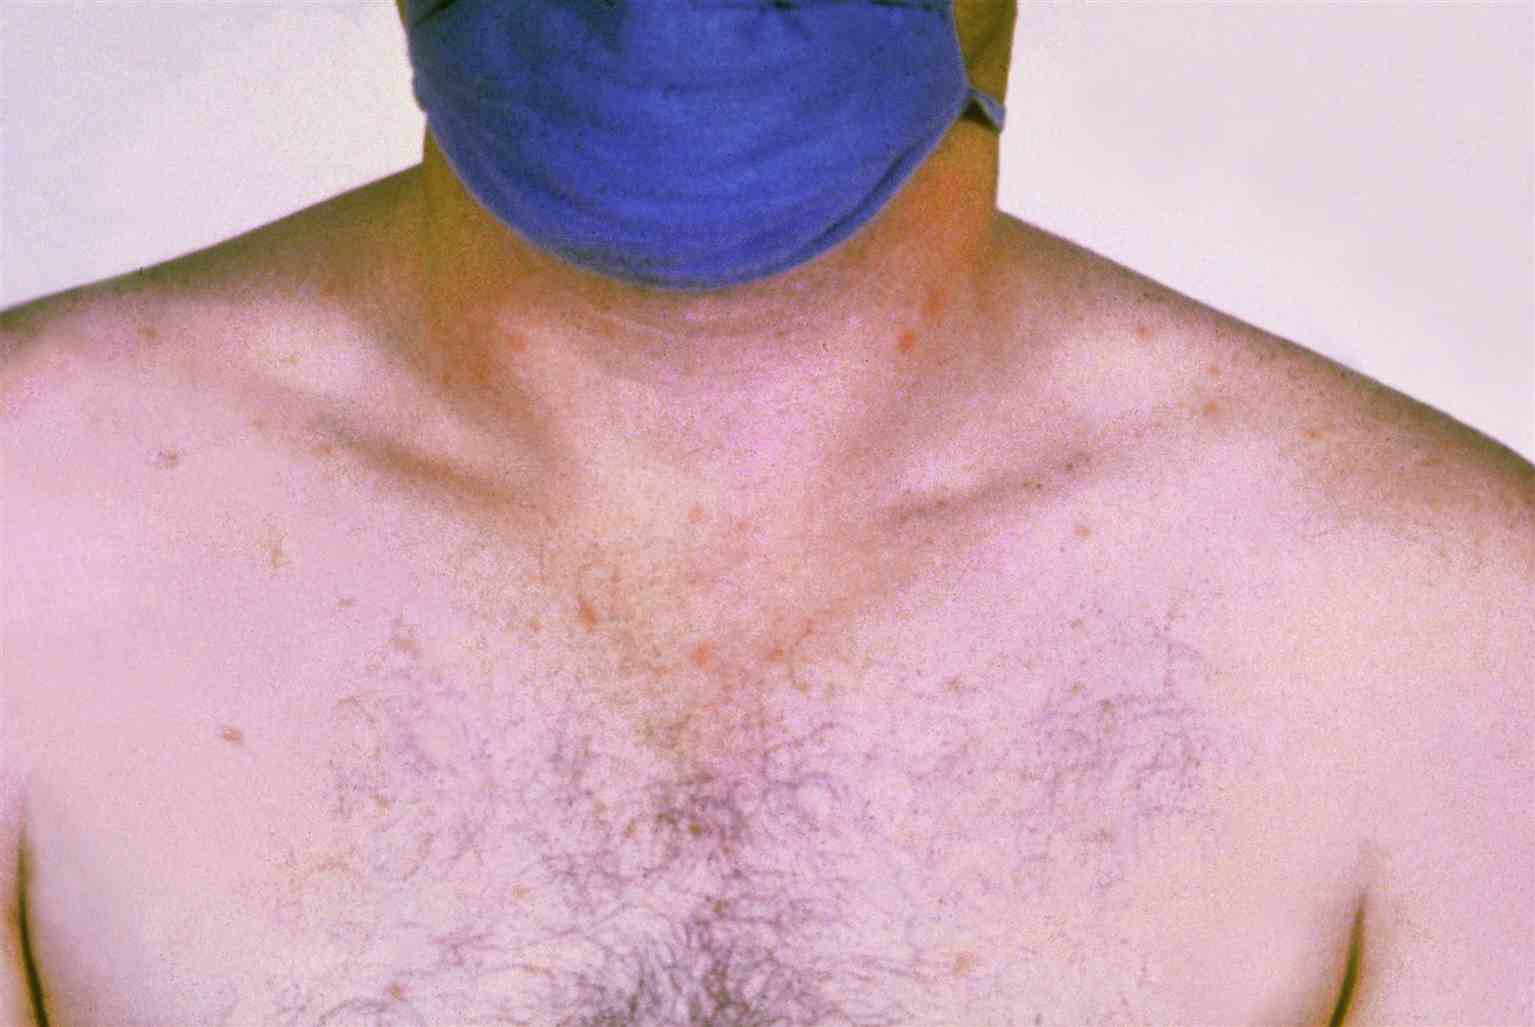 Rose spots on the chest of a patient with typhoid fever due to the bacterium Salmonella typhi. Symptoms of typhoid fever may include a sustained fever as high as 103 to 104 F (39 to 40 C), weakness, stomach pains, headache, loss of appetite. In some cases, patients have a rash of flat, rose-colored spots.